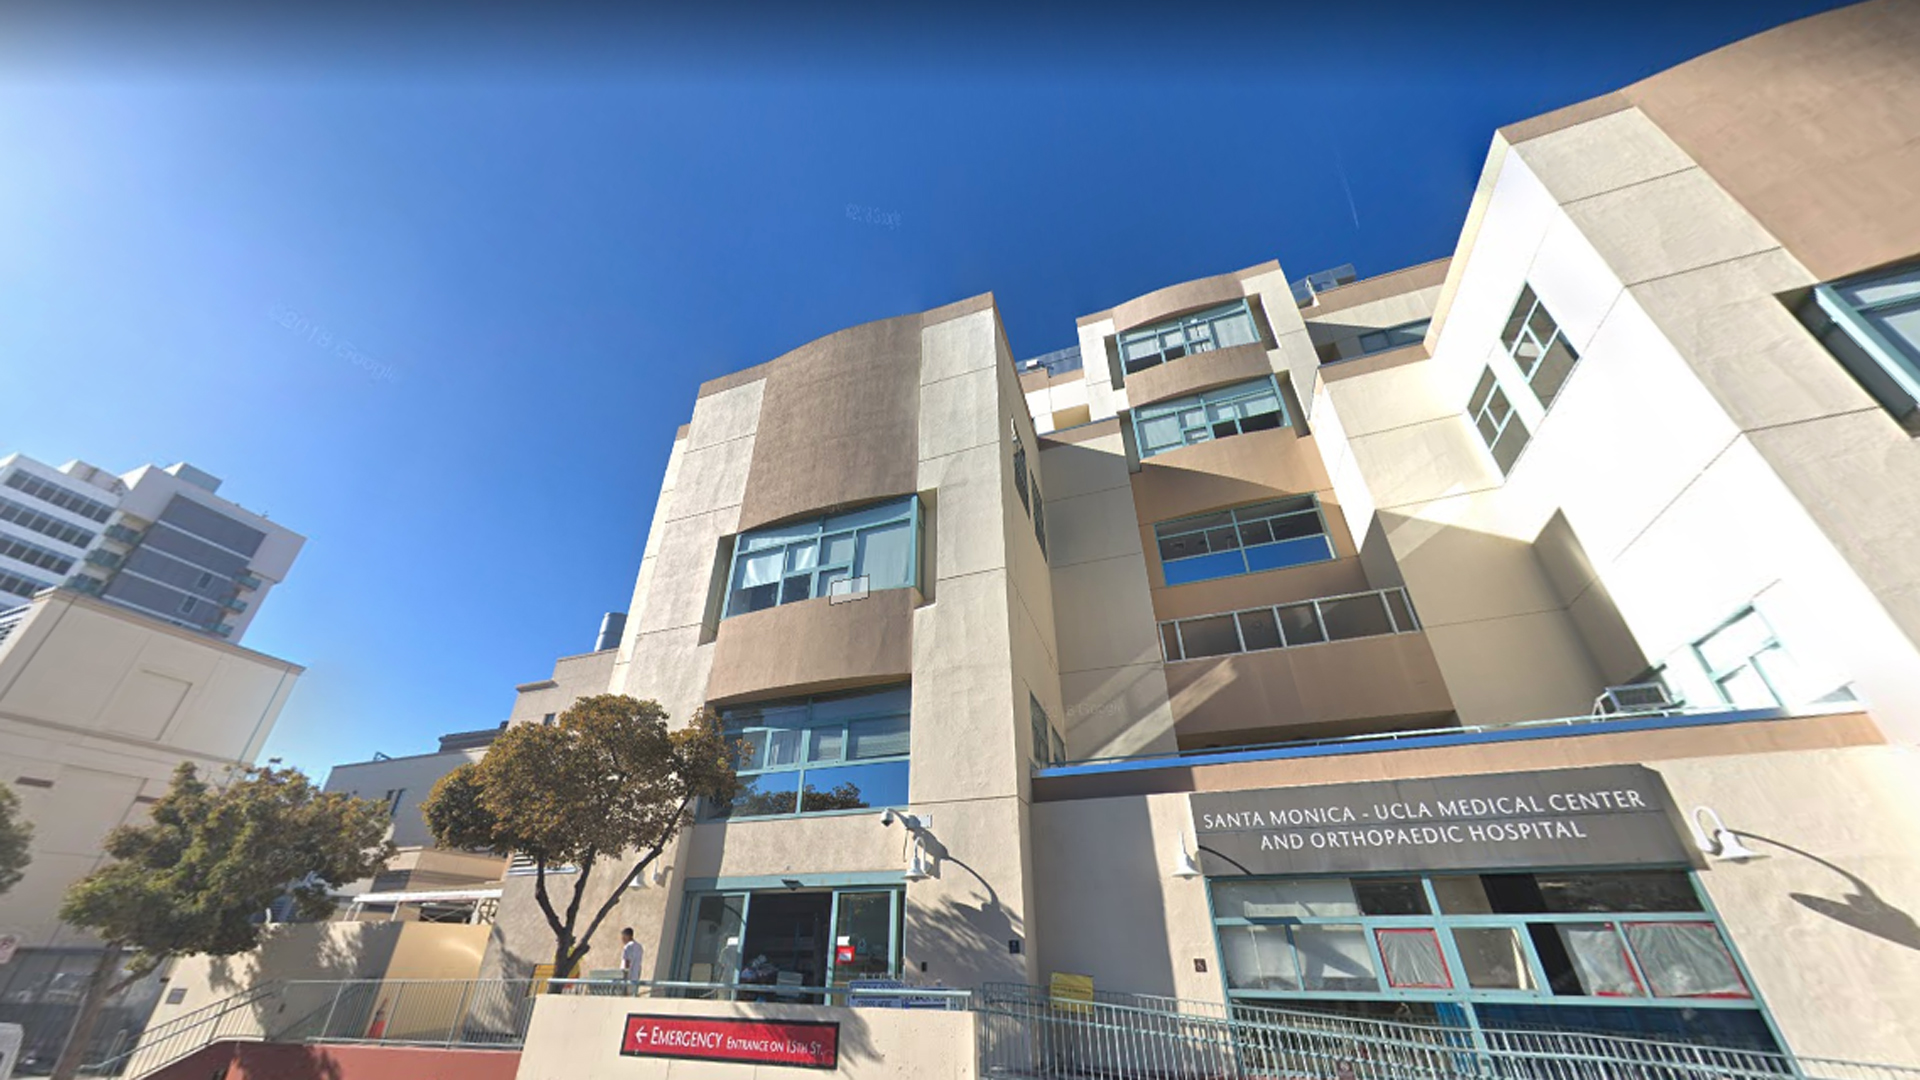 UCLA Medical Center, Santa Monica is seen in this undated image from Google Maps.